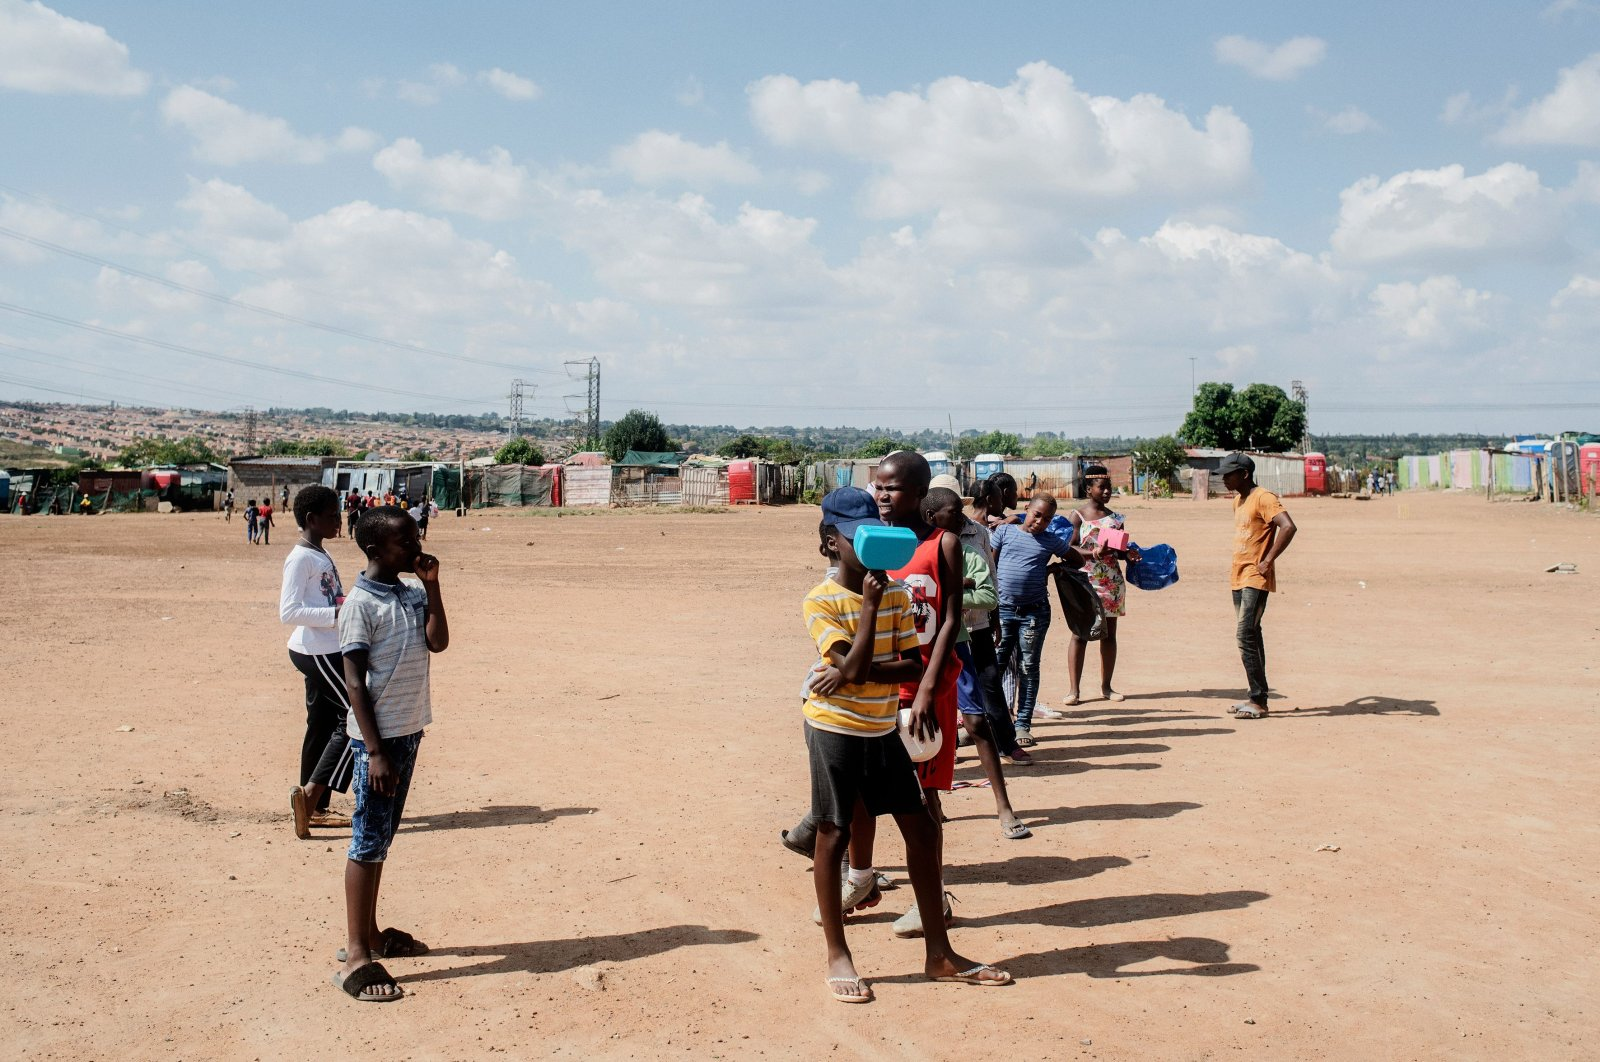 Children queue while they wait for the daily food distribution in the Tembisa informal settlement, Johannesburg on April 24, 2020. (AFP Photo)